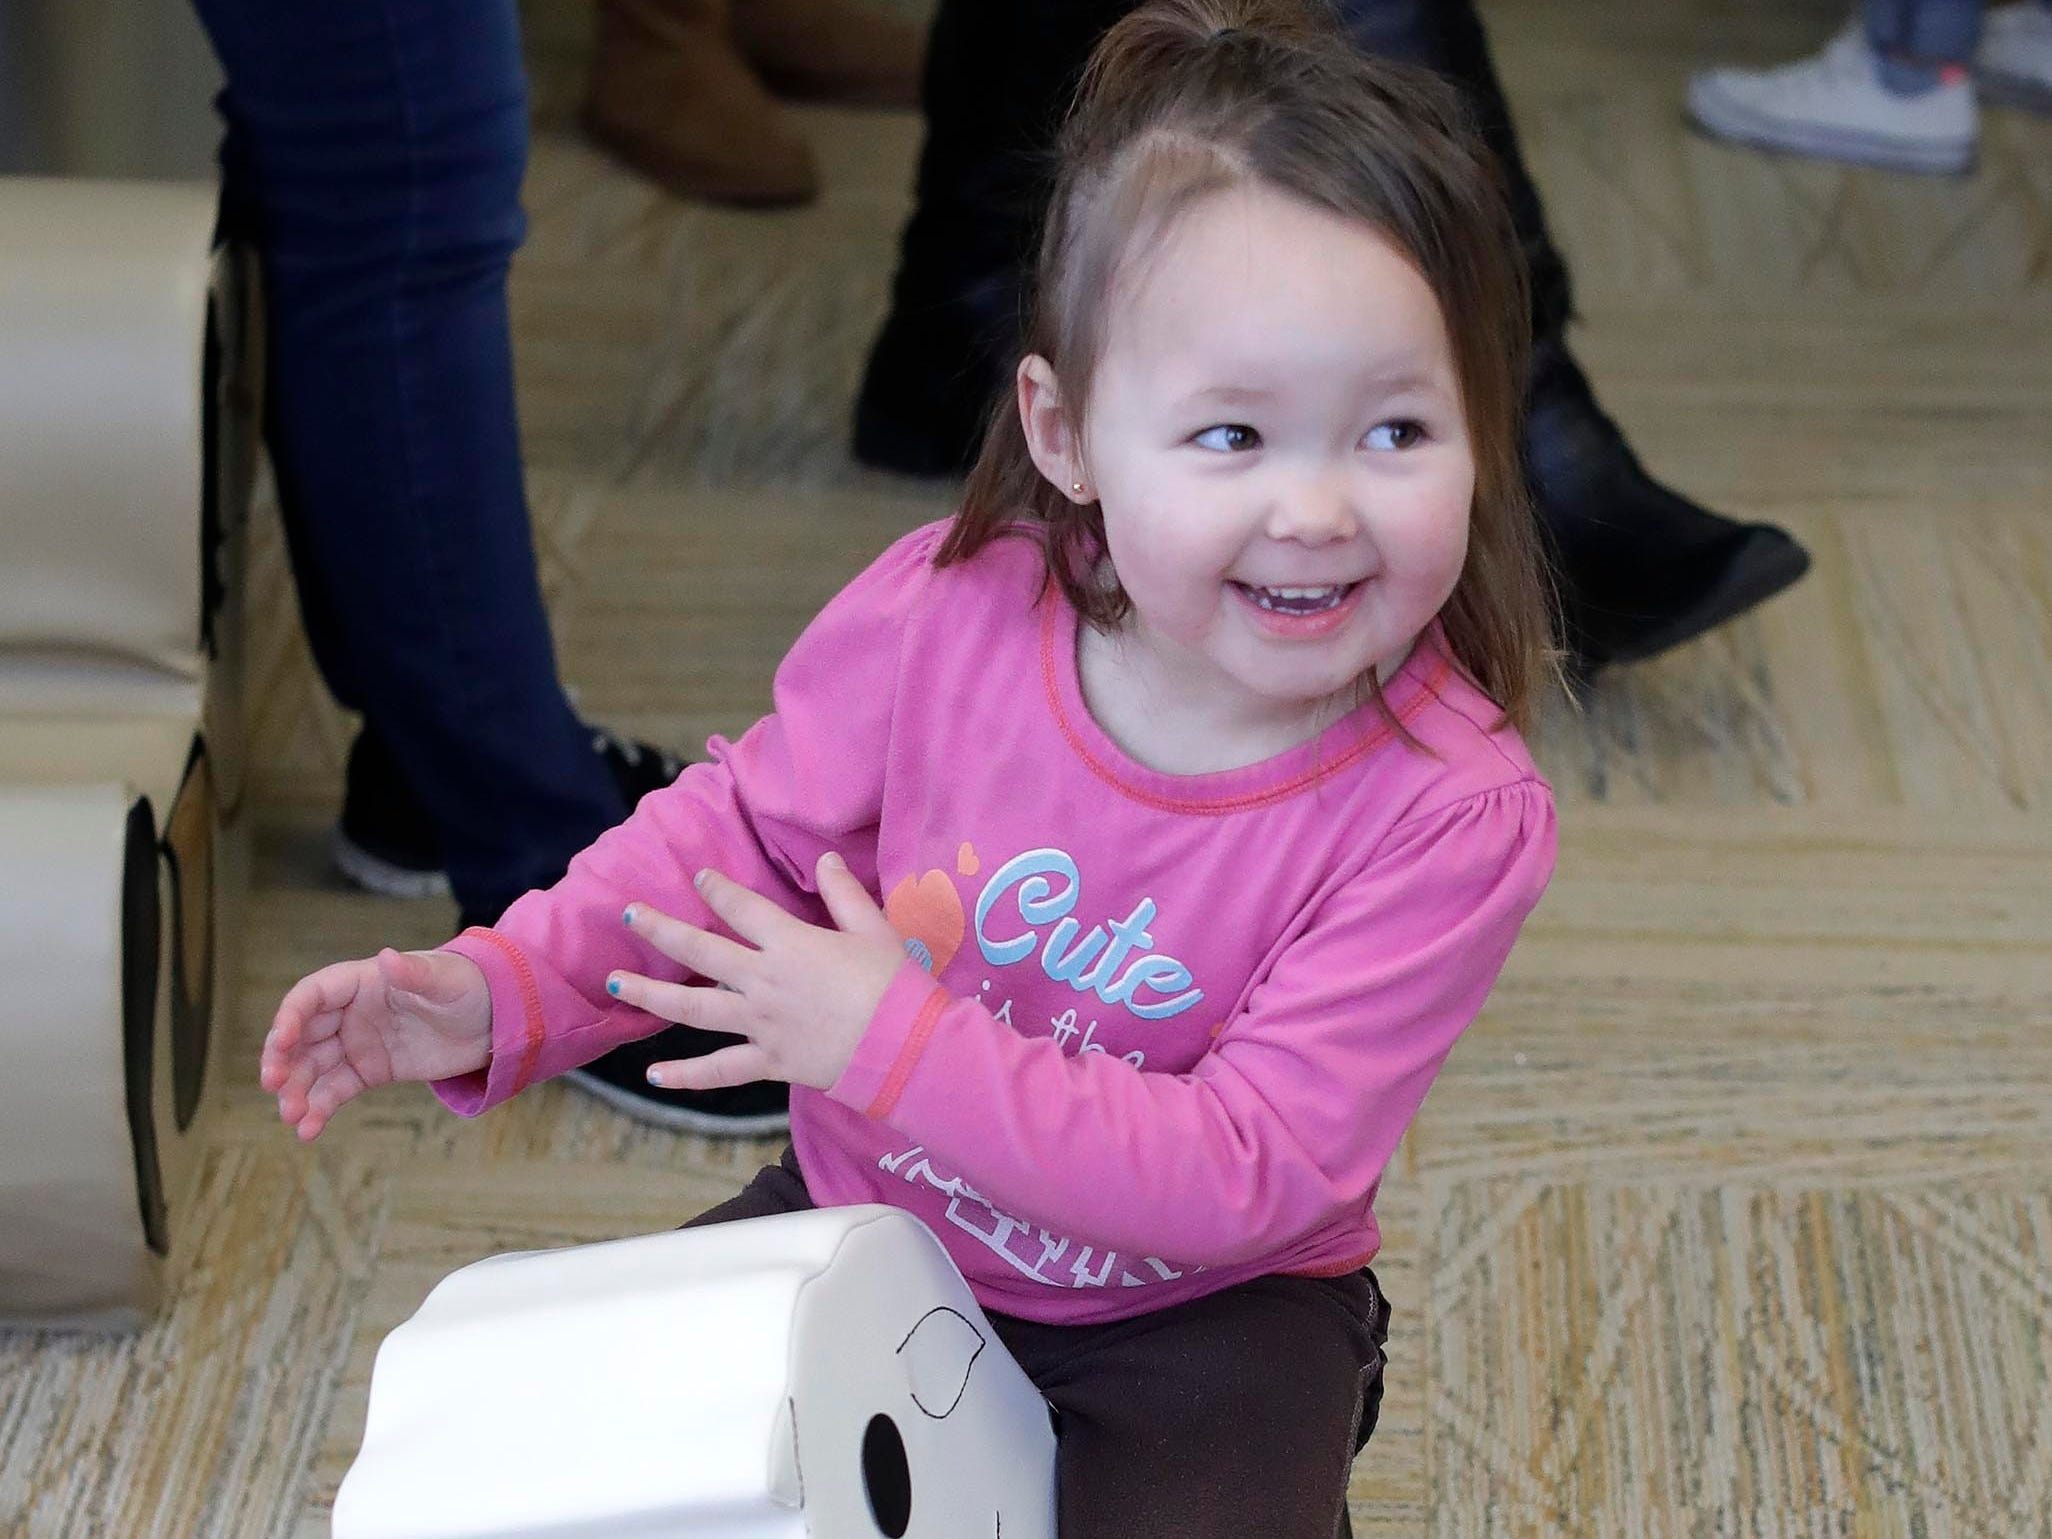 Vivian Geary, 3, of Sheboygan, is all smiles on a cow toy at the Toddler Barnyard at the Above and Beyond Children's Museum, Saturday, February 23, 2019, in Sheboygan, Wis. The new feature opened Saturday.